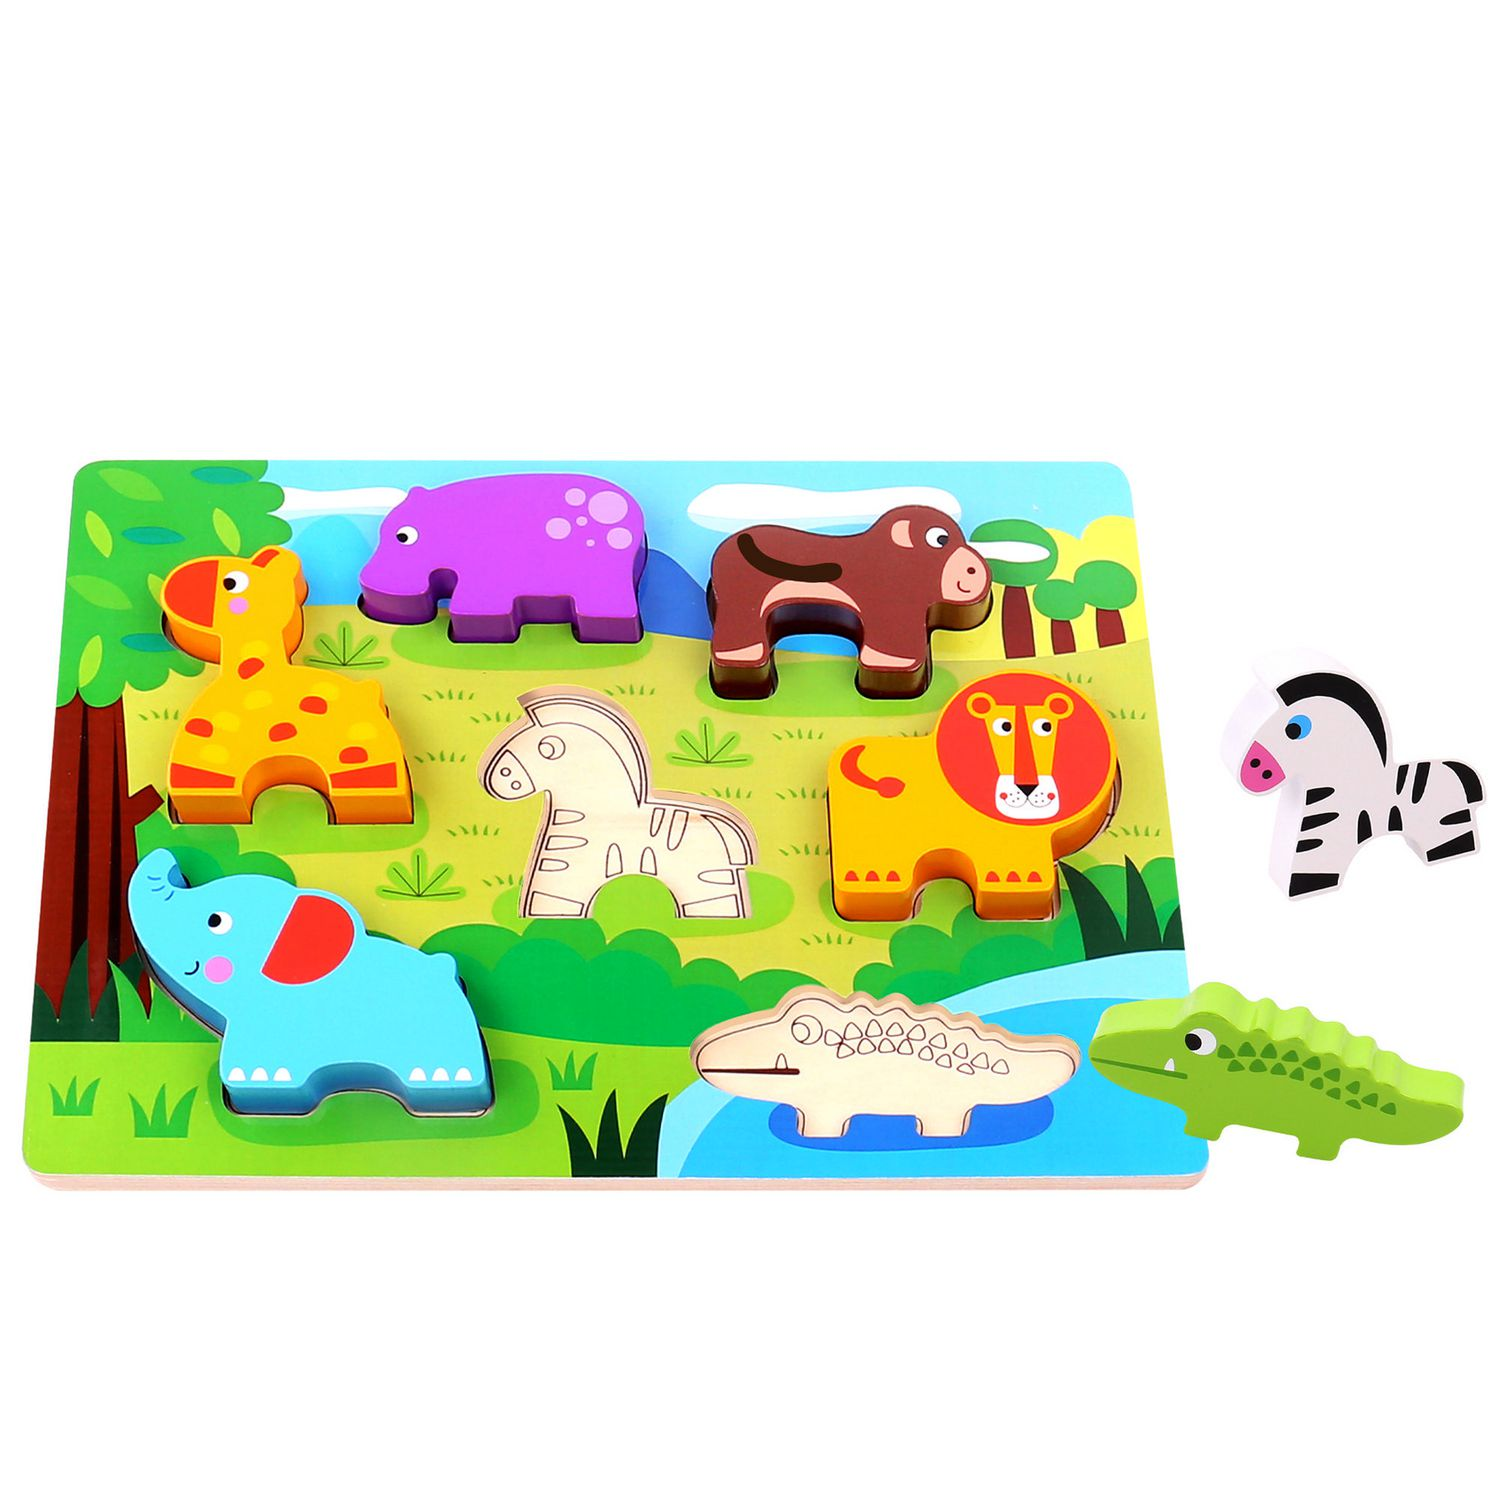 Tooky Toys Wooden Chunky Zoo Jungle Animal Puzzle